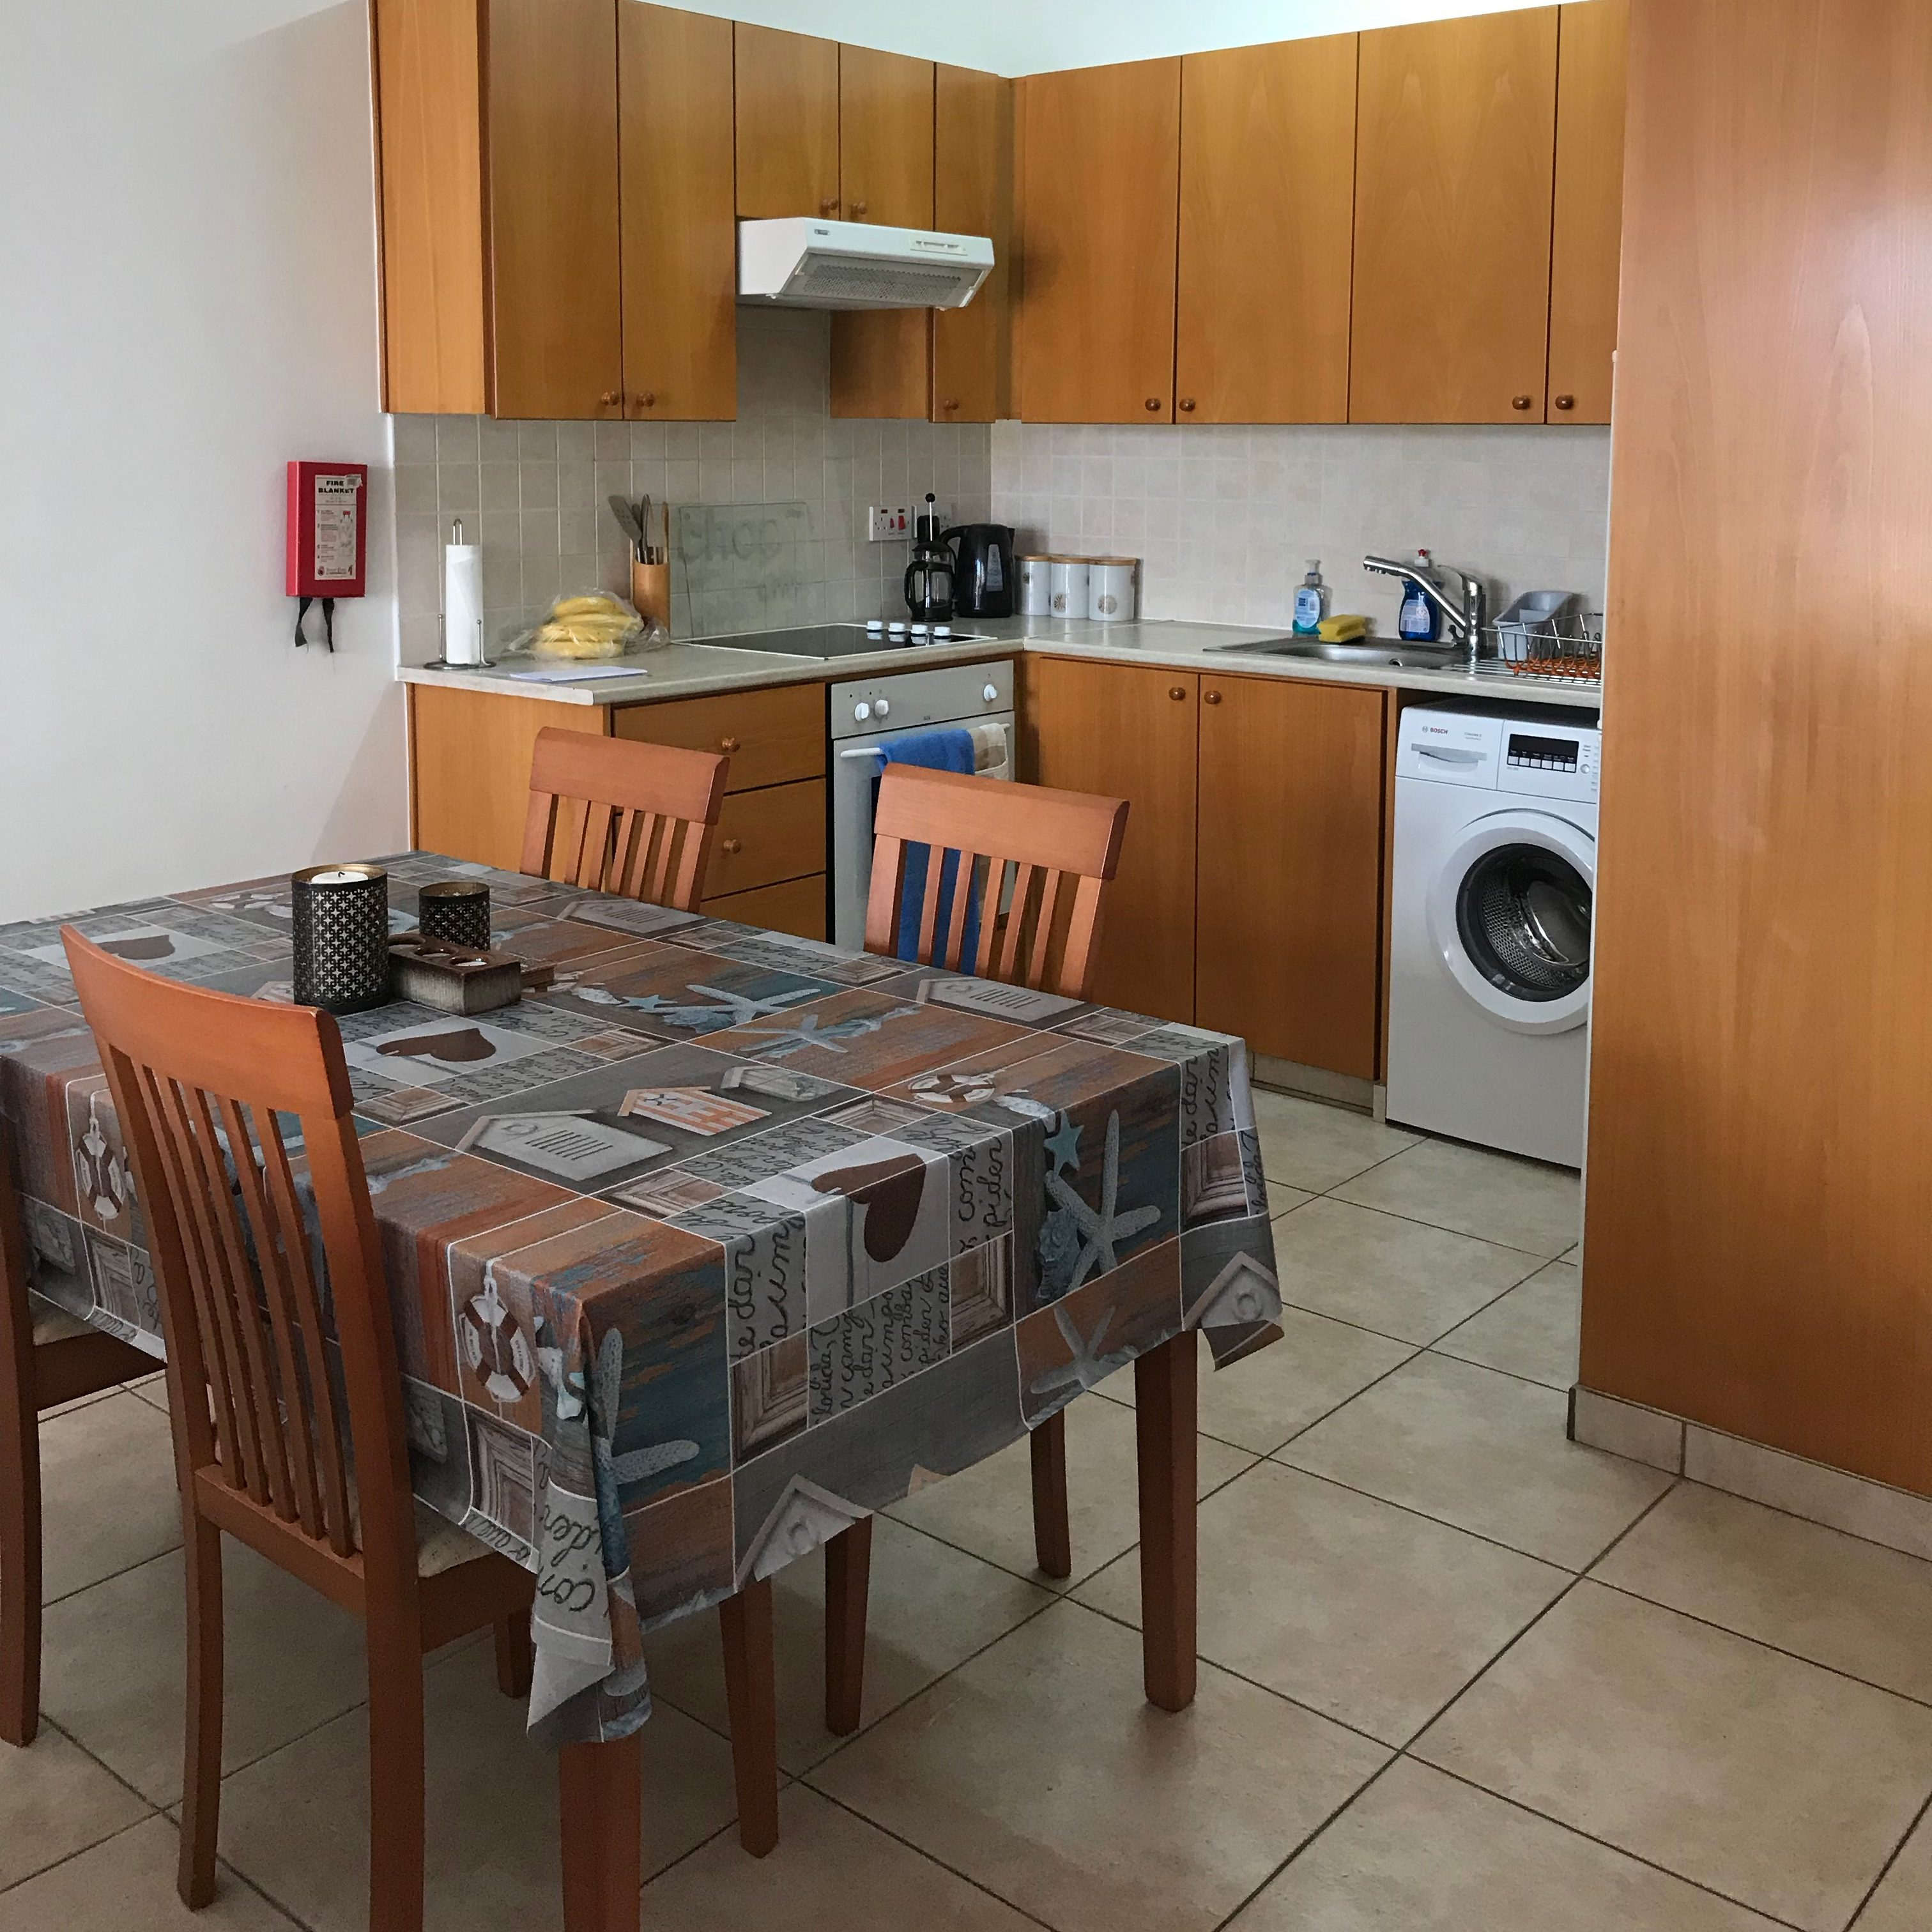 Cyprus apartment well equipped kitchen